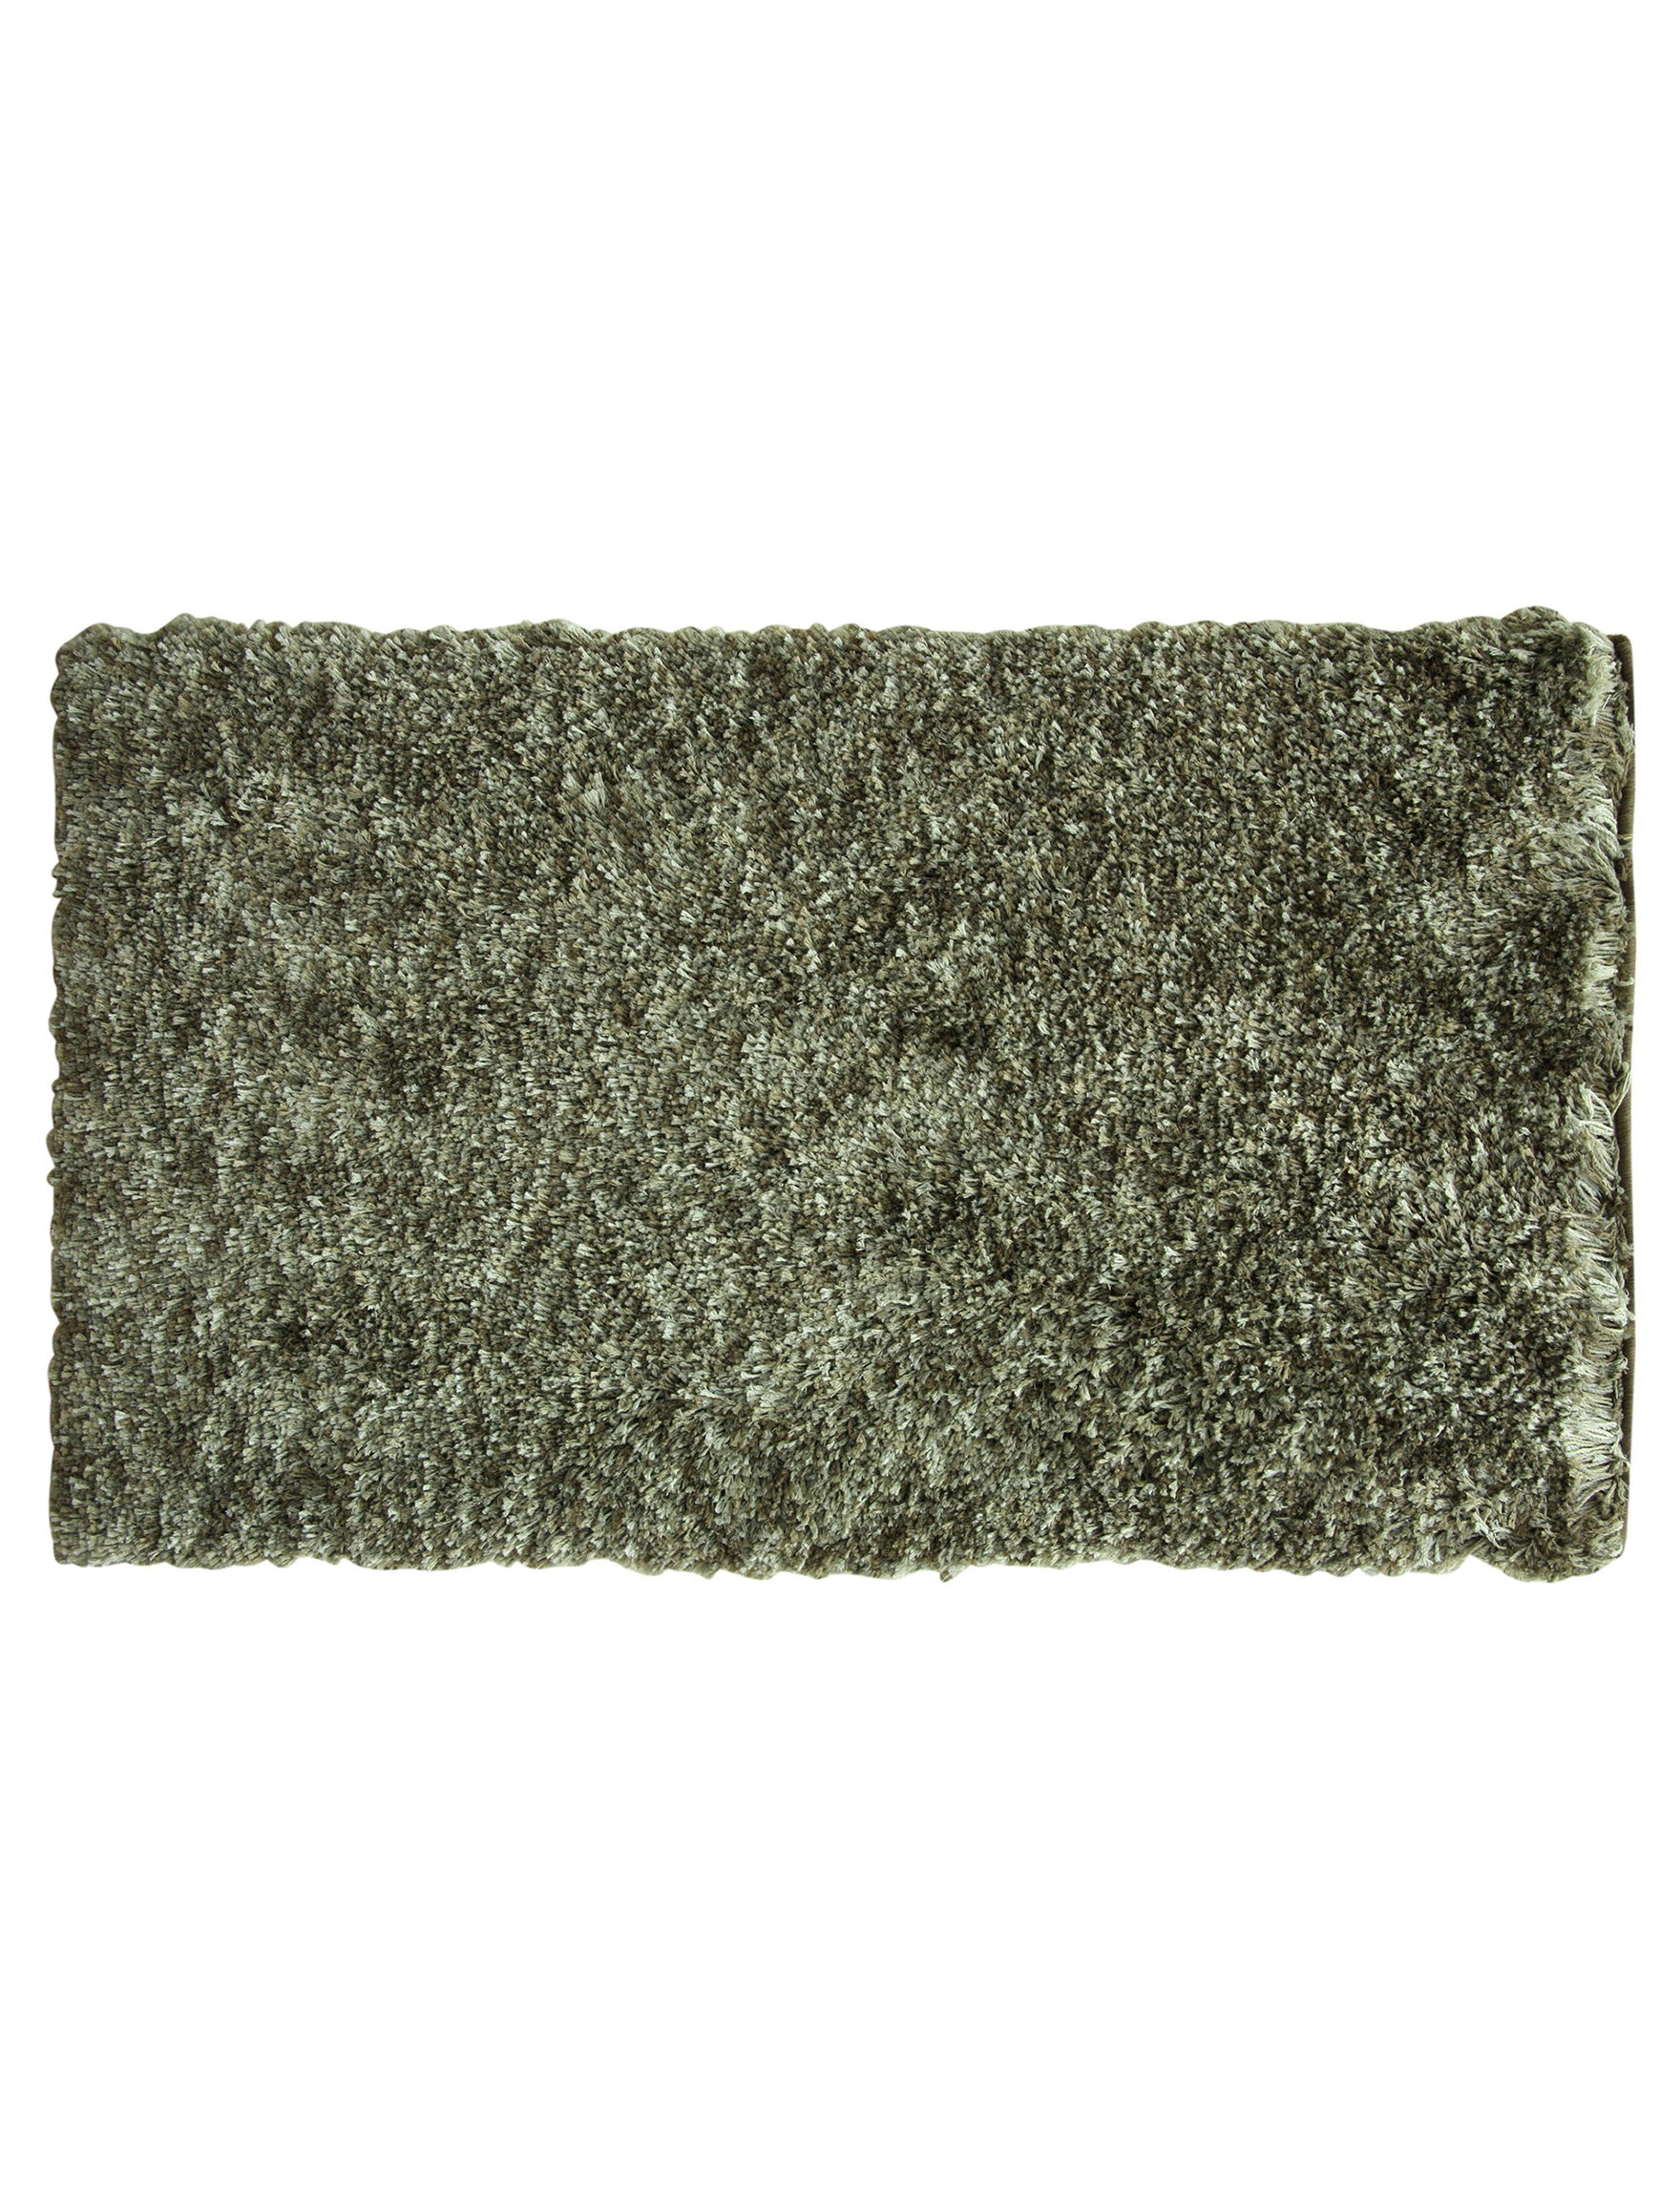 Bacova Moss Accent Rugs Rugs